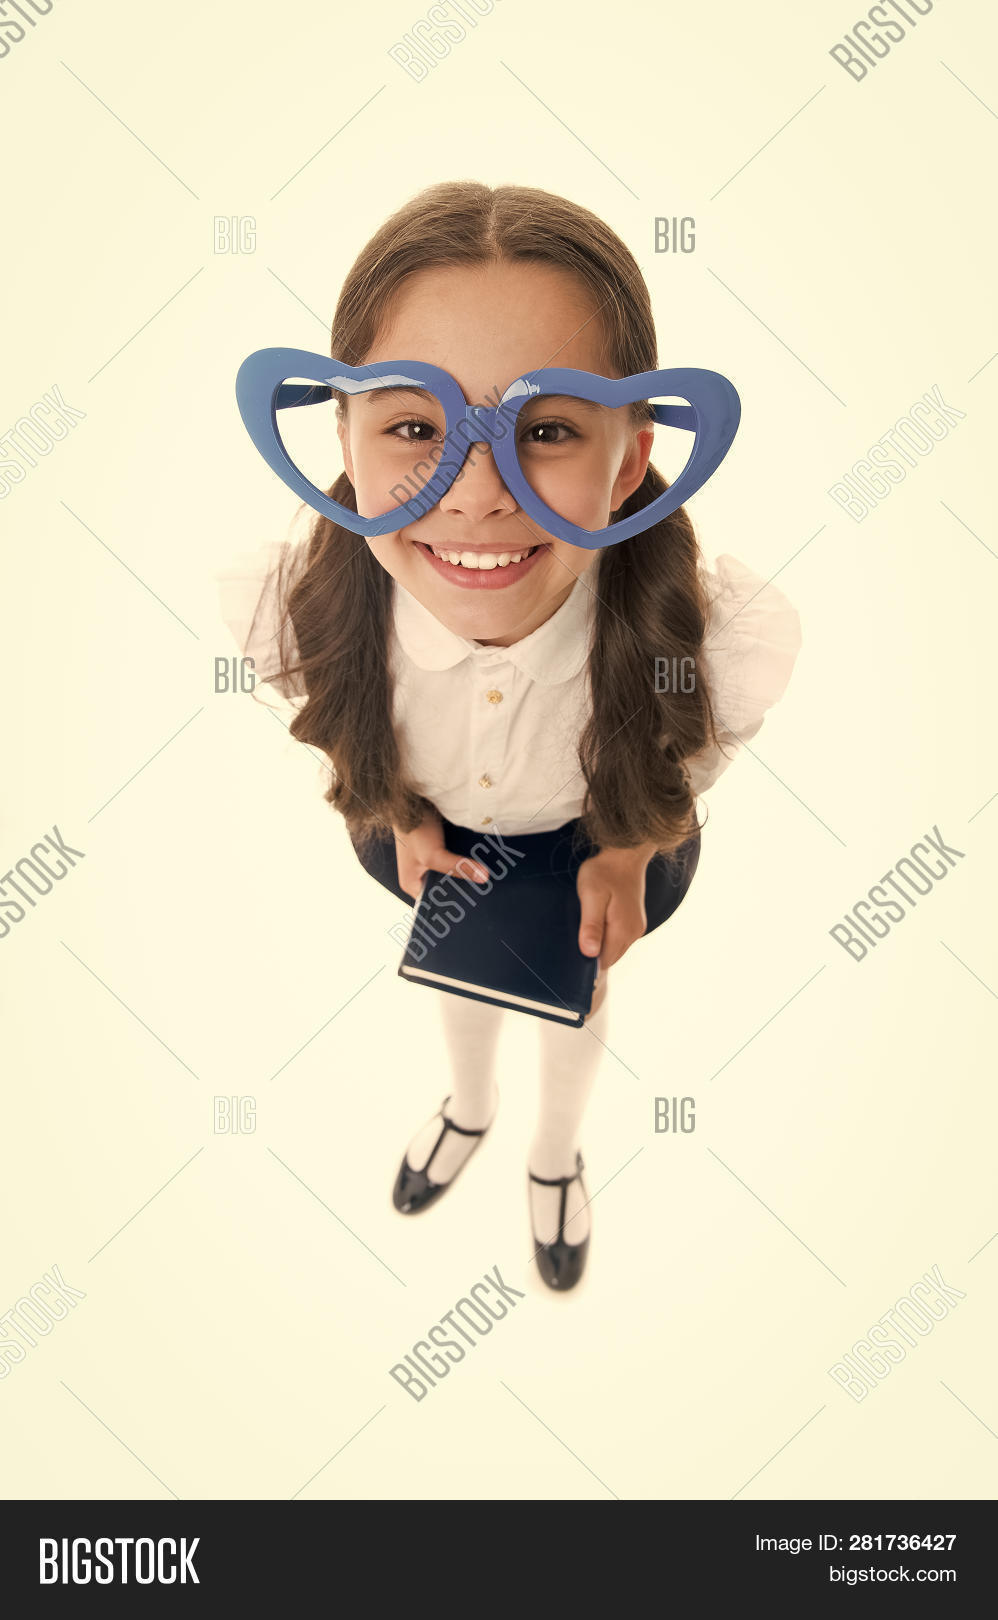 4e1e6cde11f6e Girl Cute Big Heart Shaped Glasses Isolated White Background. Child Girl  School Uniform Clothes Hold